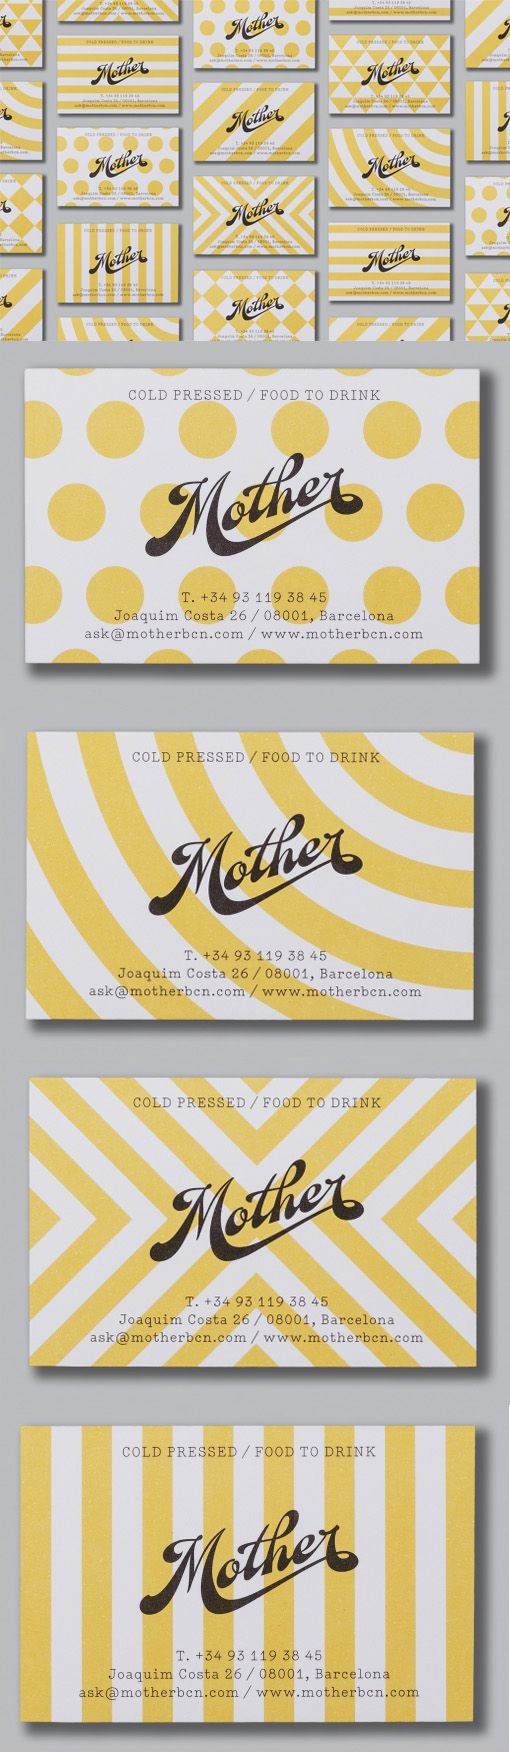 Business Card For A Natural Beverage Company